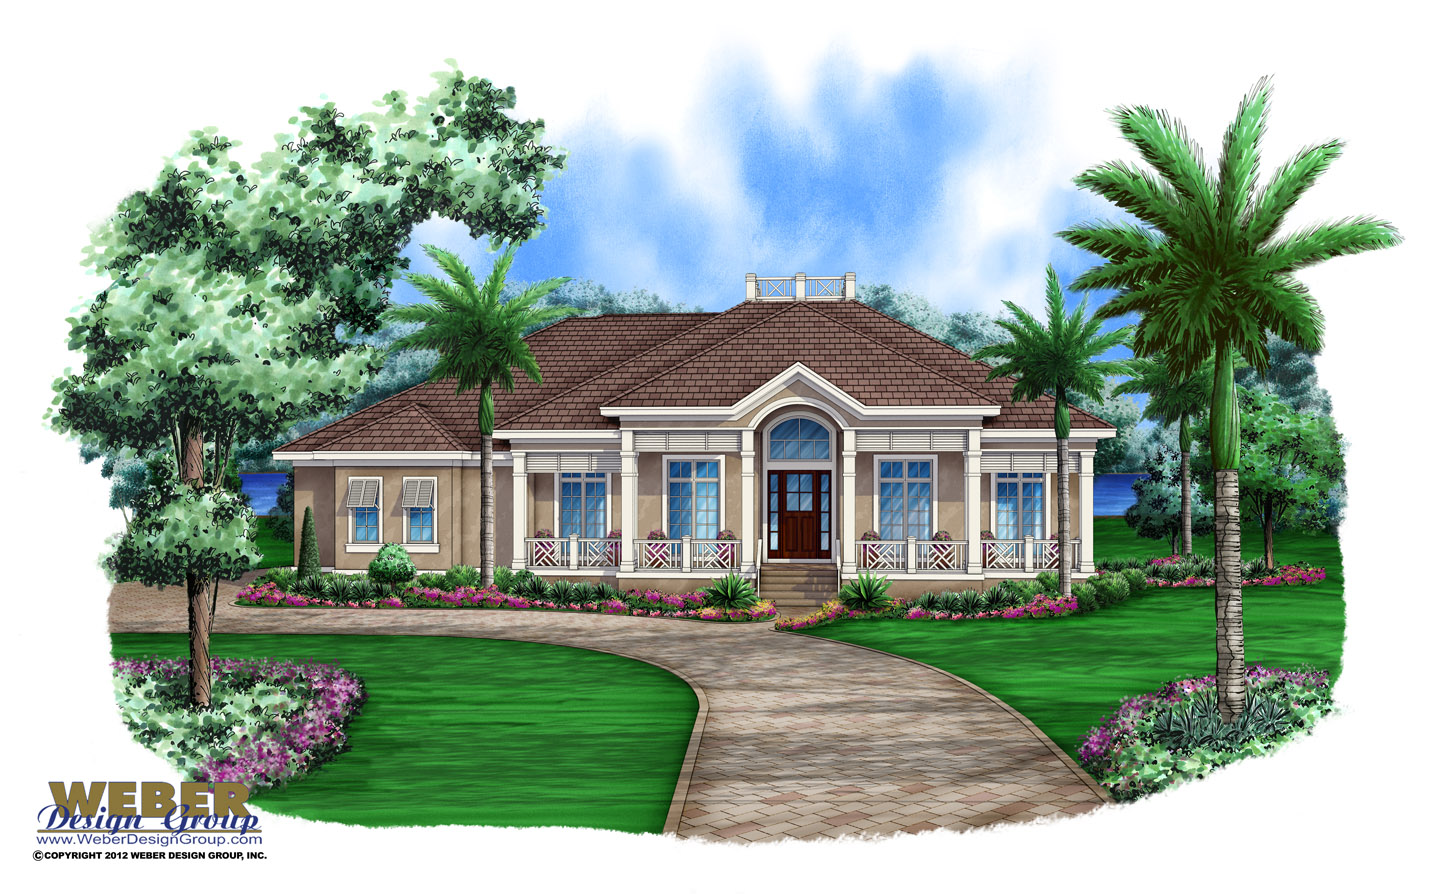 Olde florida plan aruba house plan weber design group for Florida cottage plans